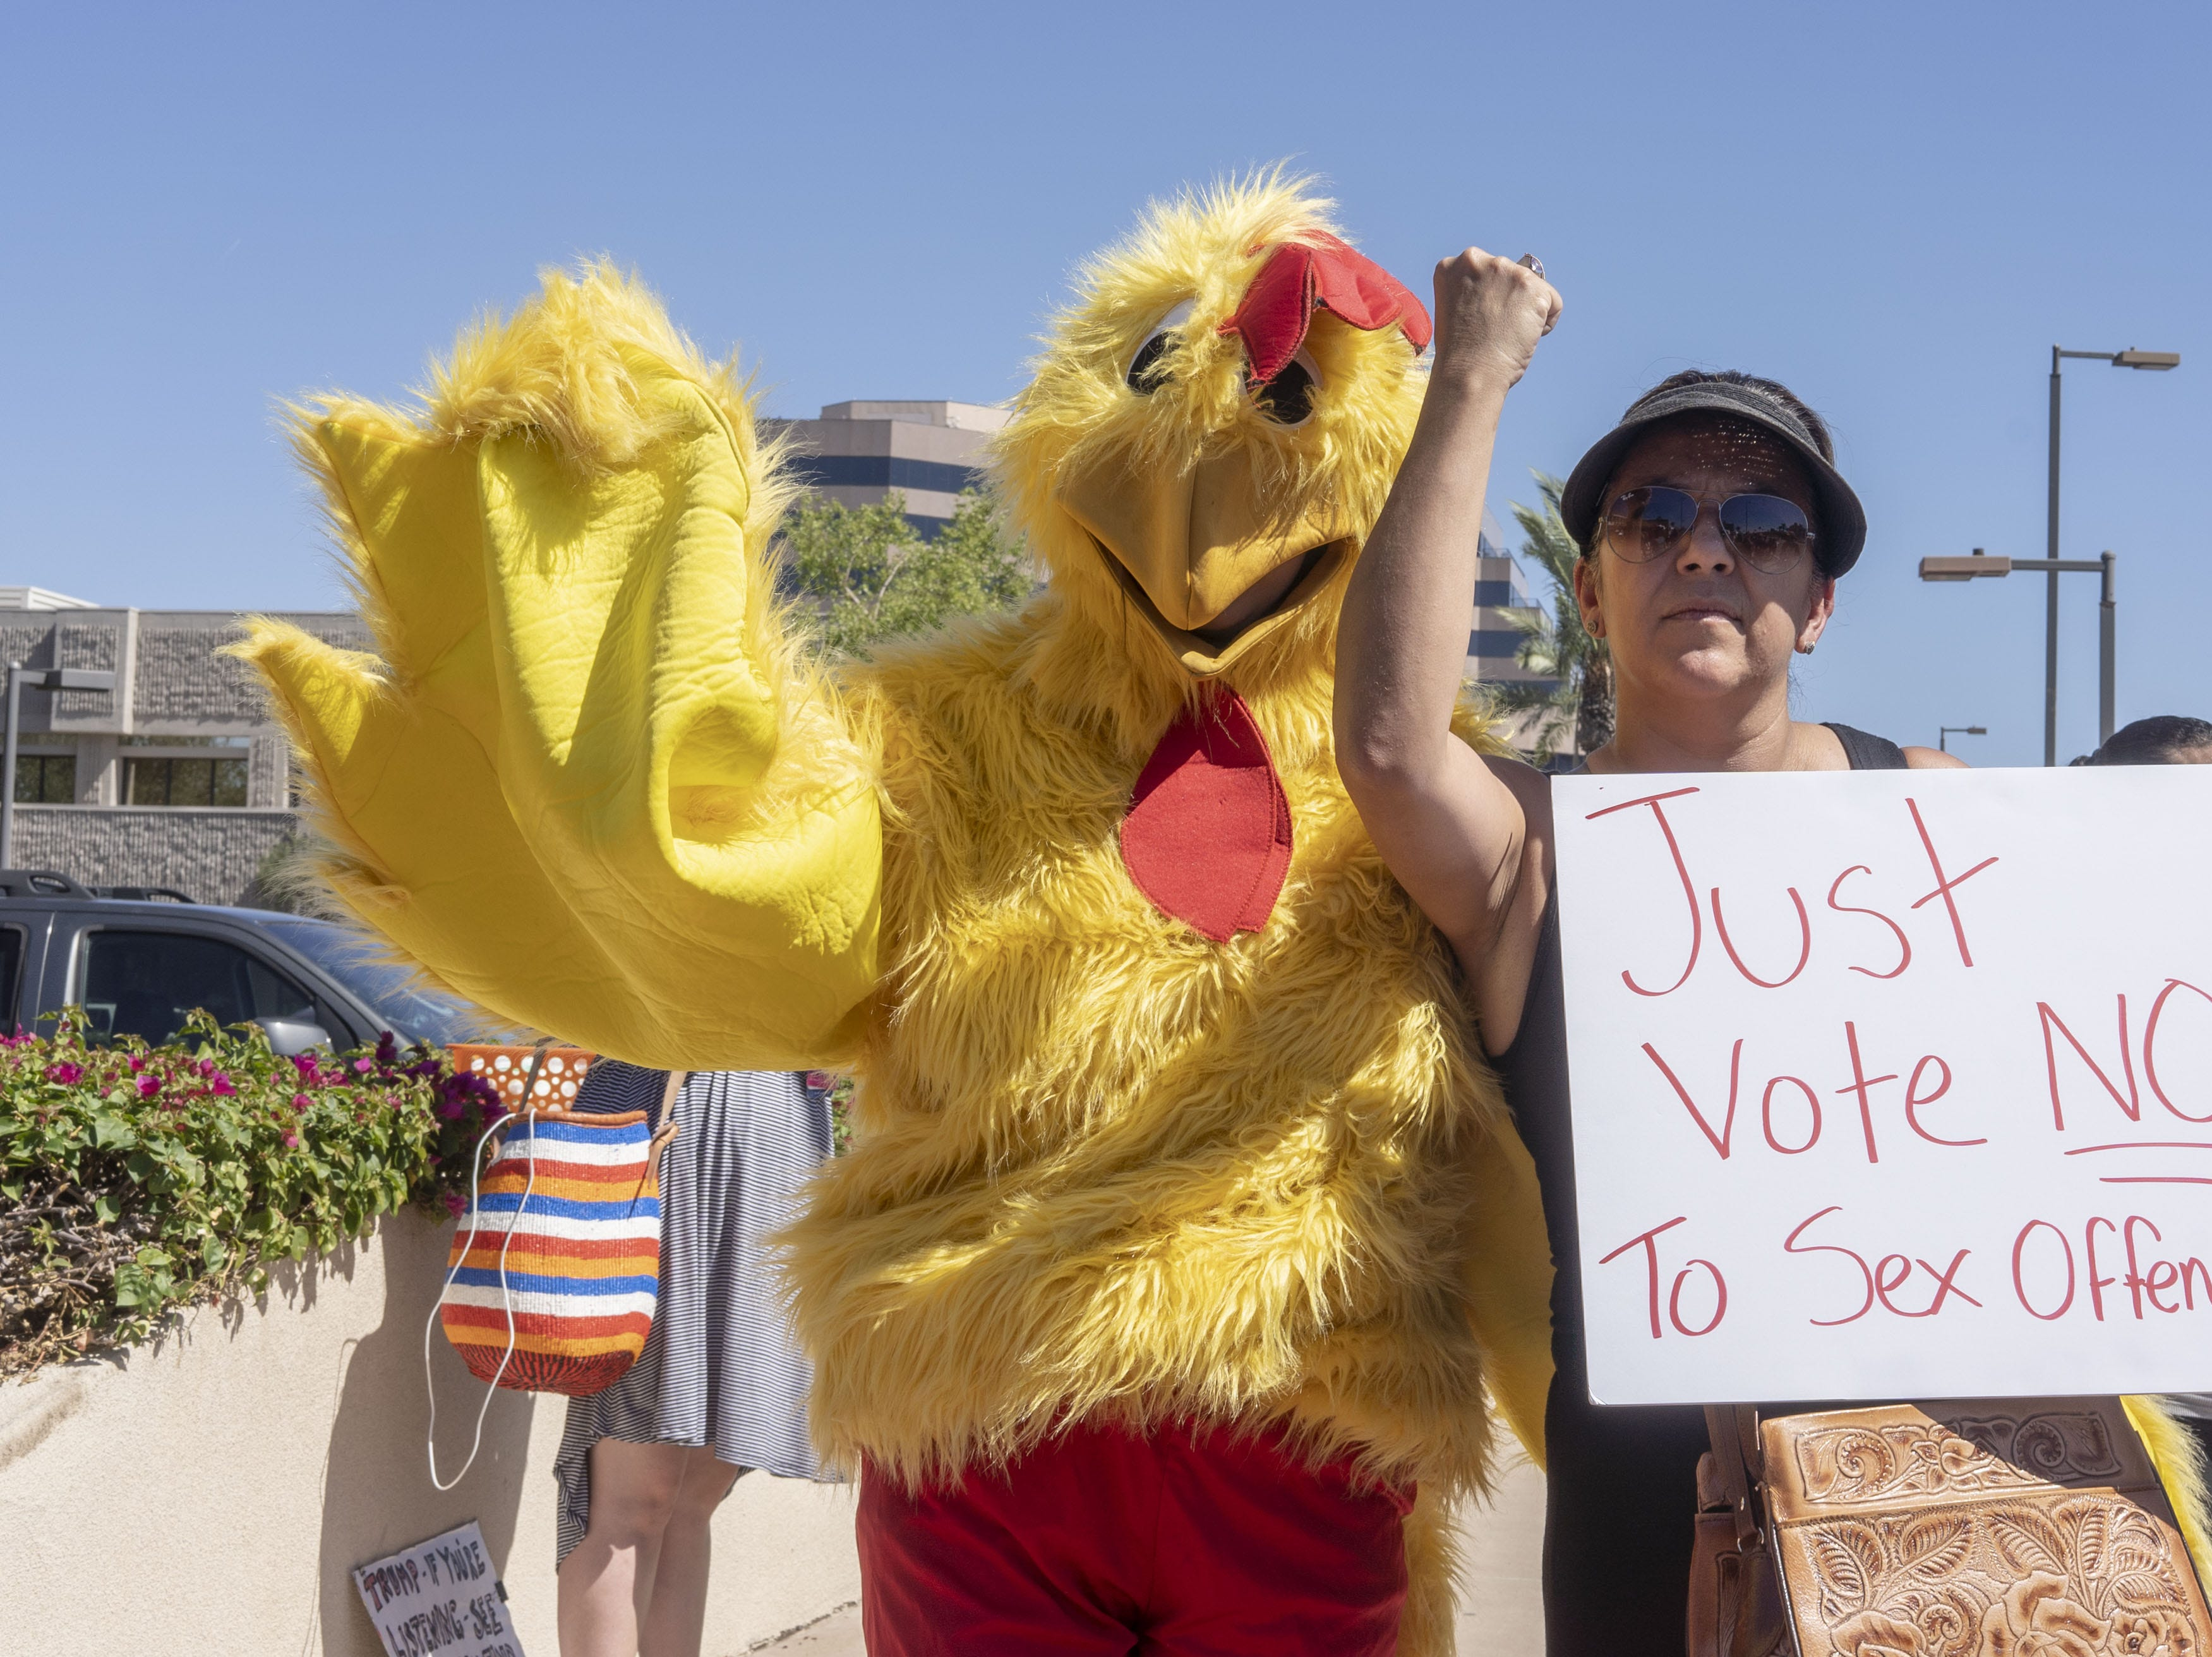 Protesters march outside Jeff Flake's office in Phoenix on Sept. 28, 2018. Flake said he wouldn't support a floor vote for Judge Brett Kavanaugh U.S. Supreme Court confirmation without allowing an investigation into sexual harassment accusations against Kavanaugh.